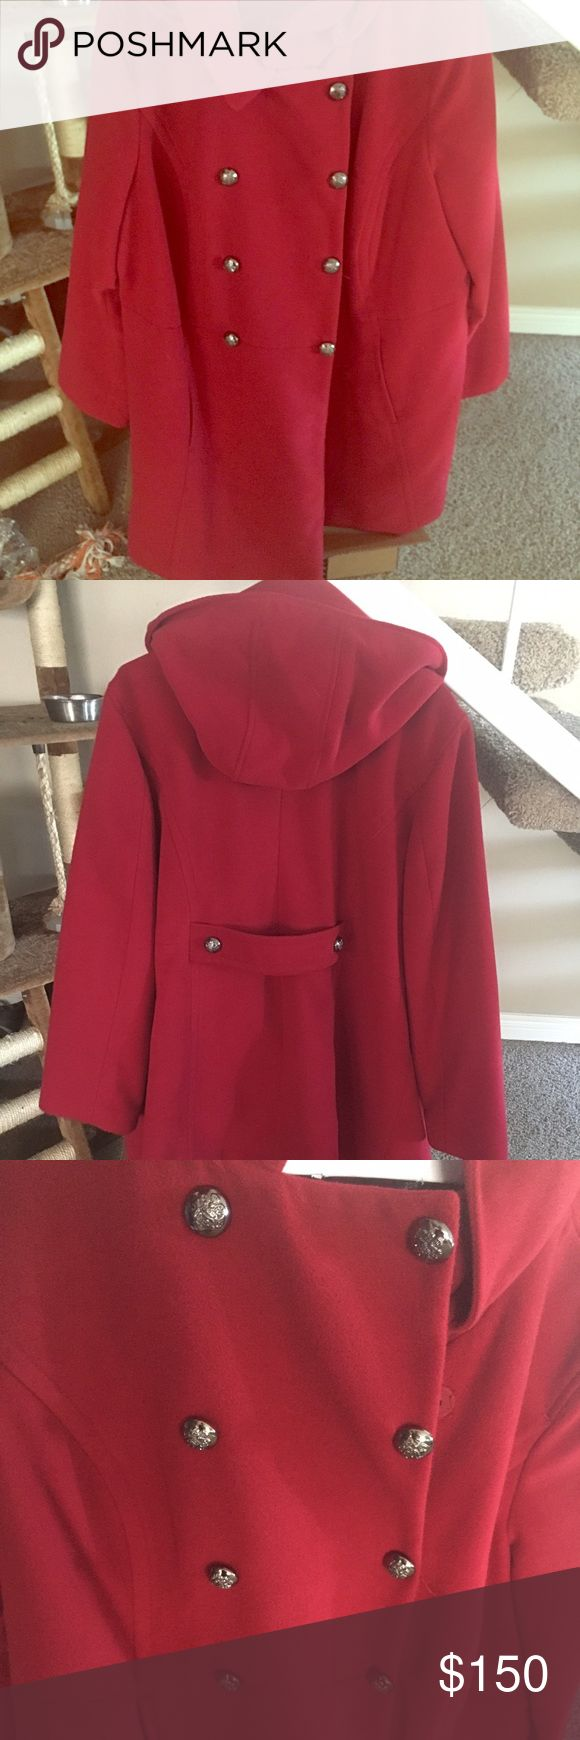 Women's Style & Company red pea coat with hoodie. Women's Style & Company red pea coat with hoodie. Only worn a couple of times. I can no longer wear it since it is too large. Very bright red and heavy material. Style & Co Jackets & Coats Pea Coats